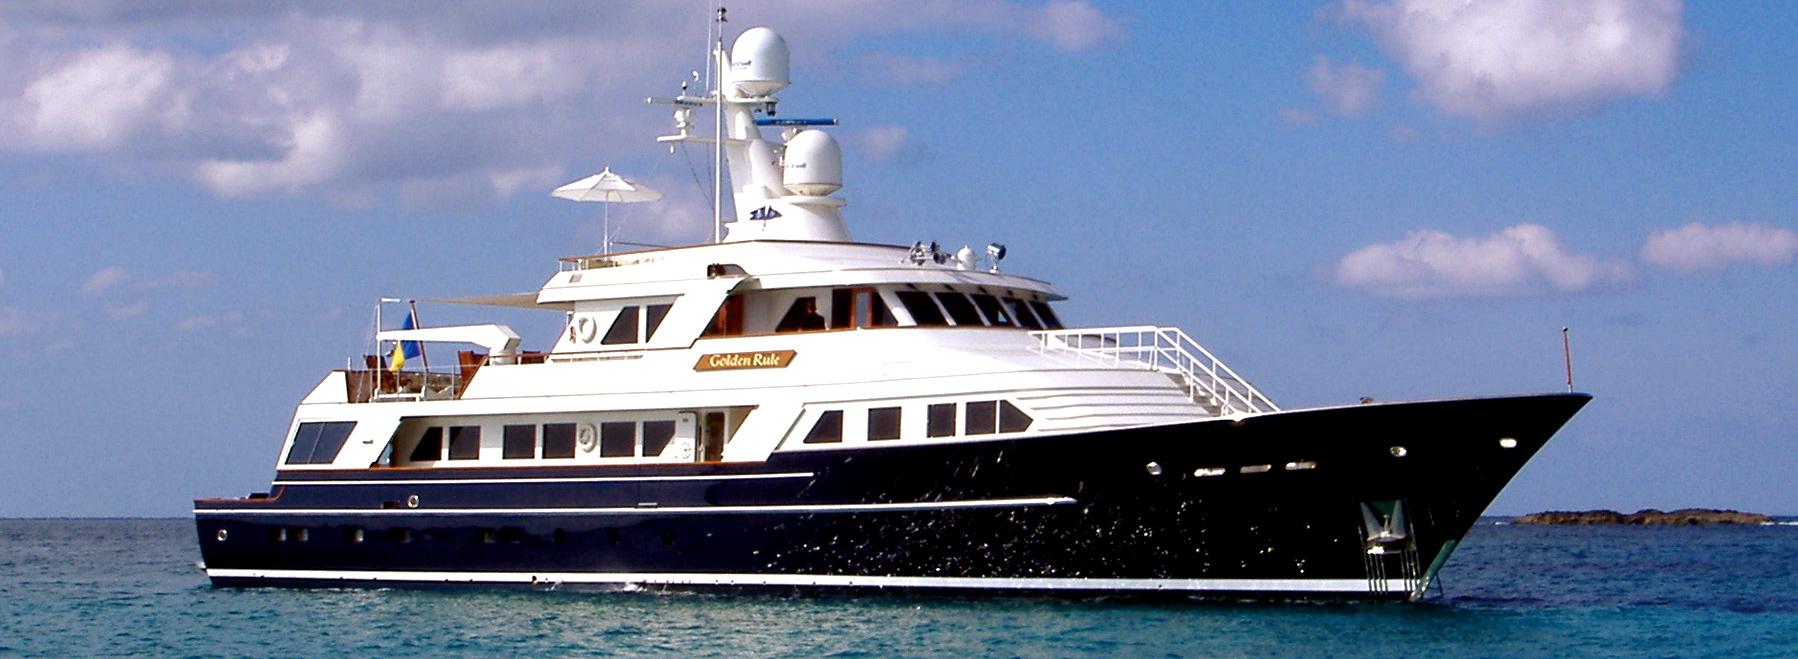 feadship yacht for sale  127 u0026 39  golden rule